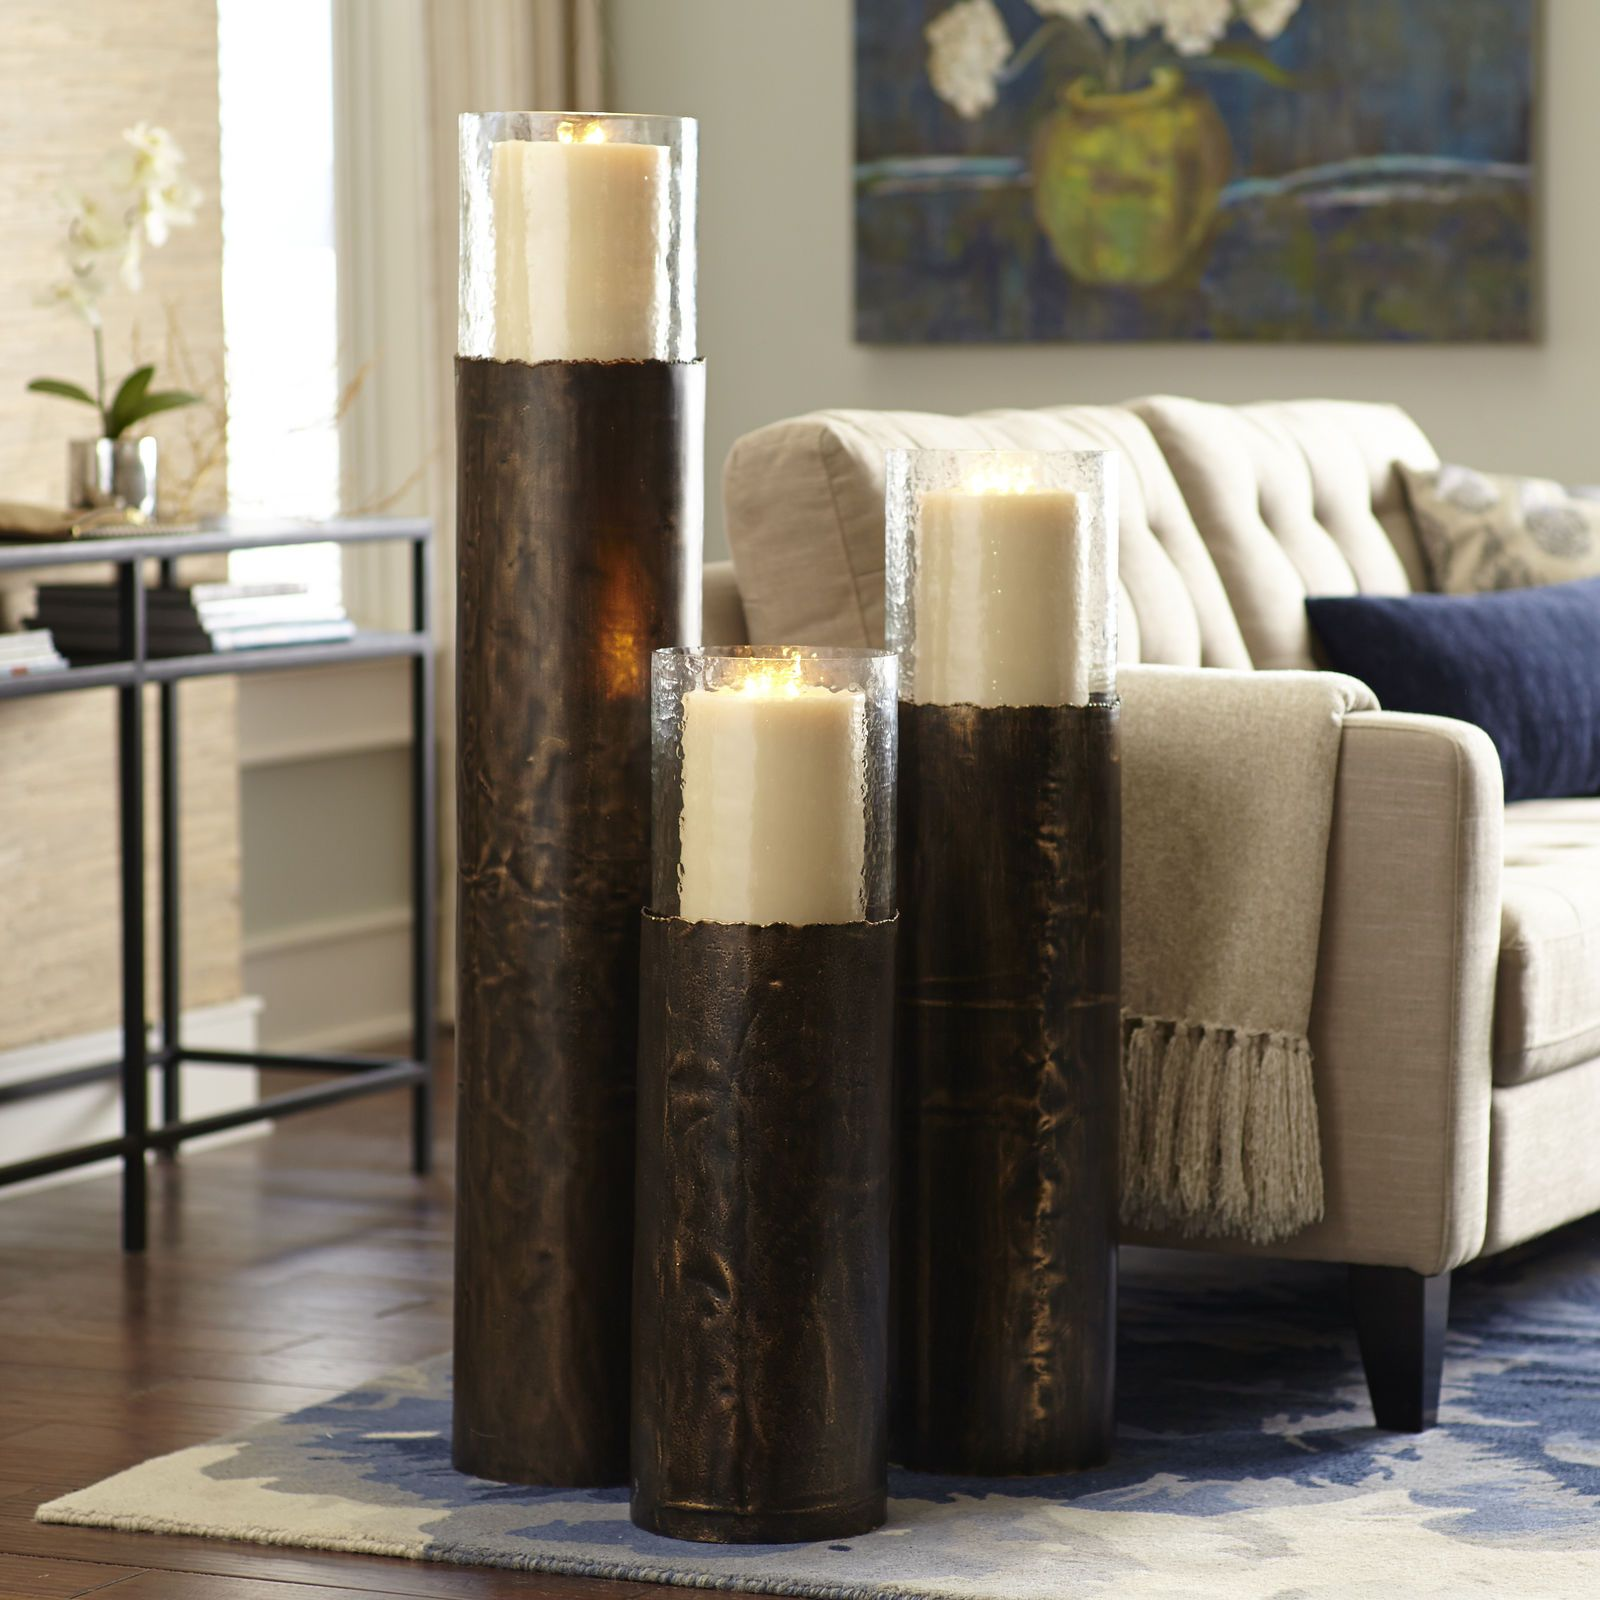 Copper Leaf Floor Pillar Holders Floor Candle Large Floor Candle Holders Floor Pillar Candle Holders